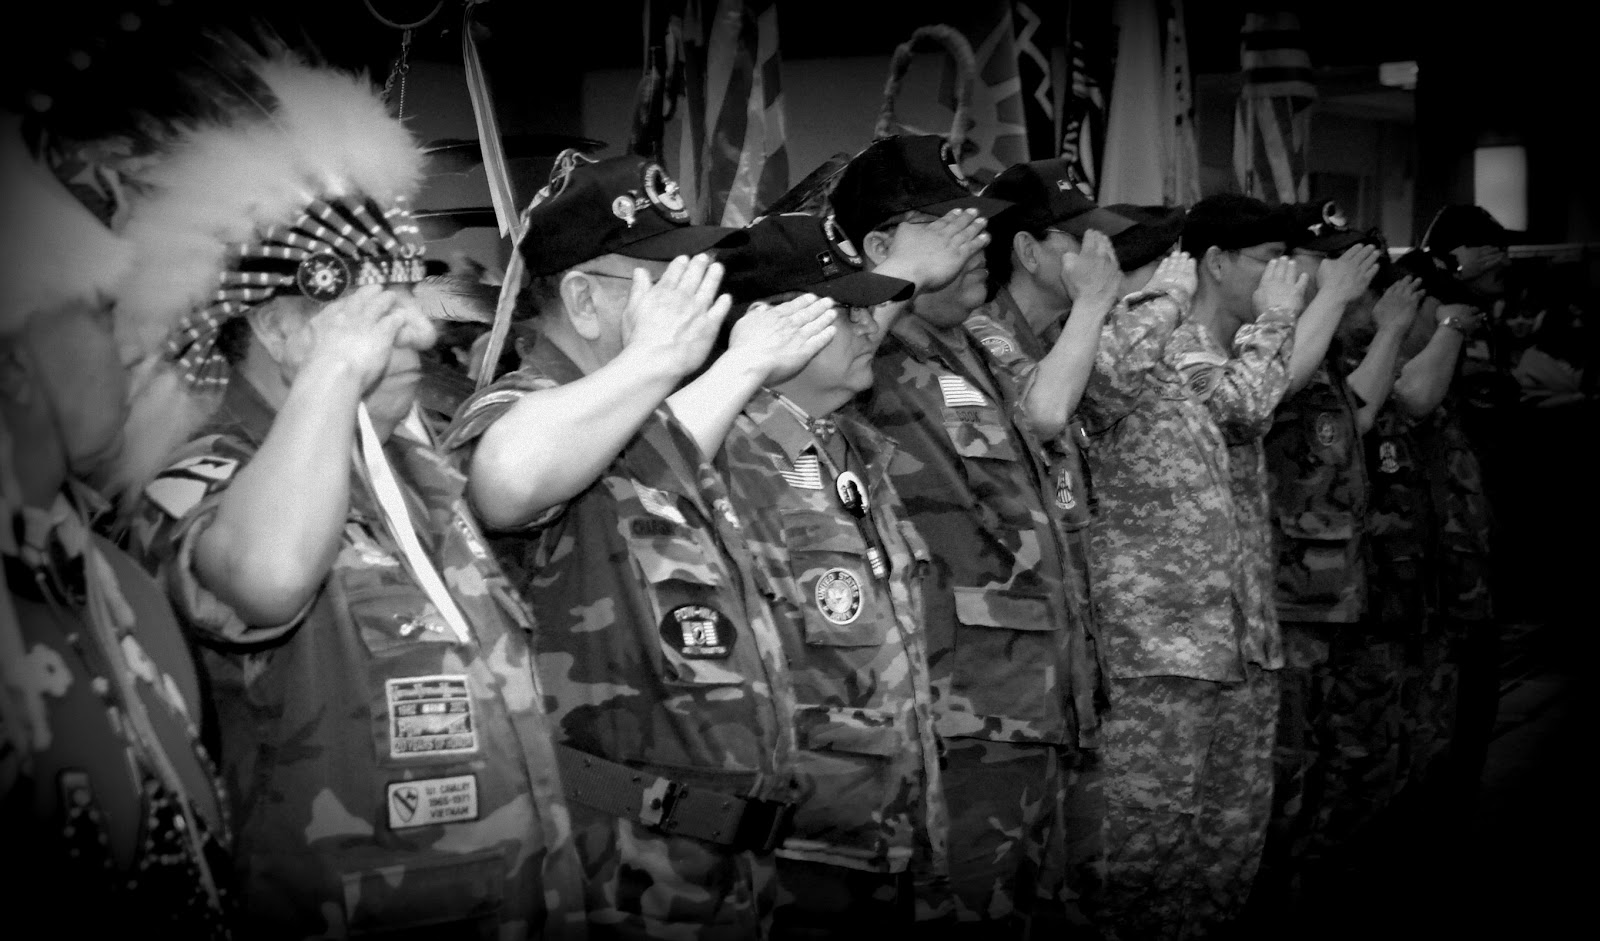 A Salute by Native Veterans in Washington DC - Photo: Vincent Schilling